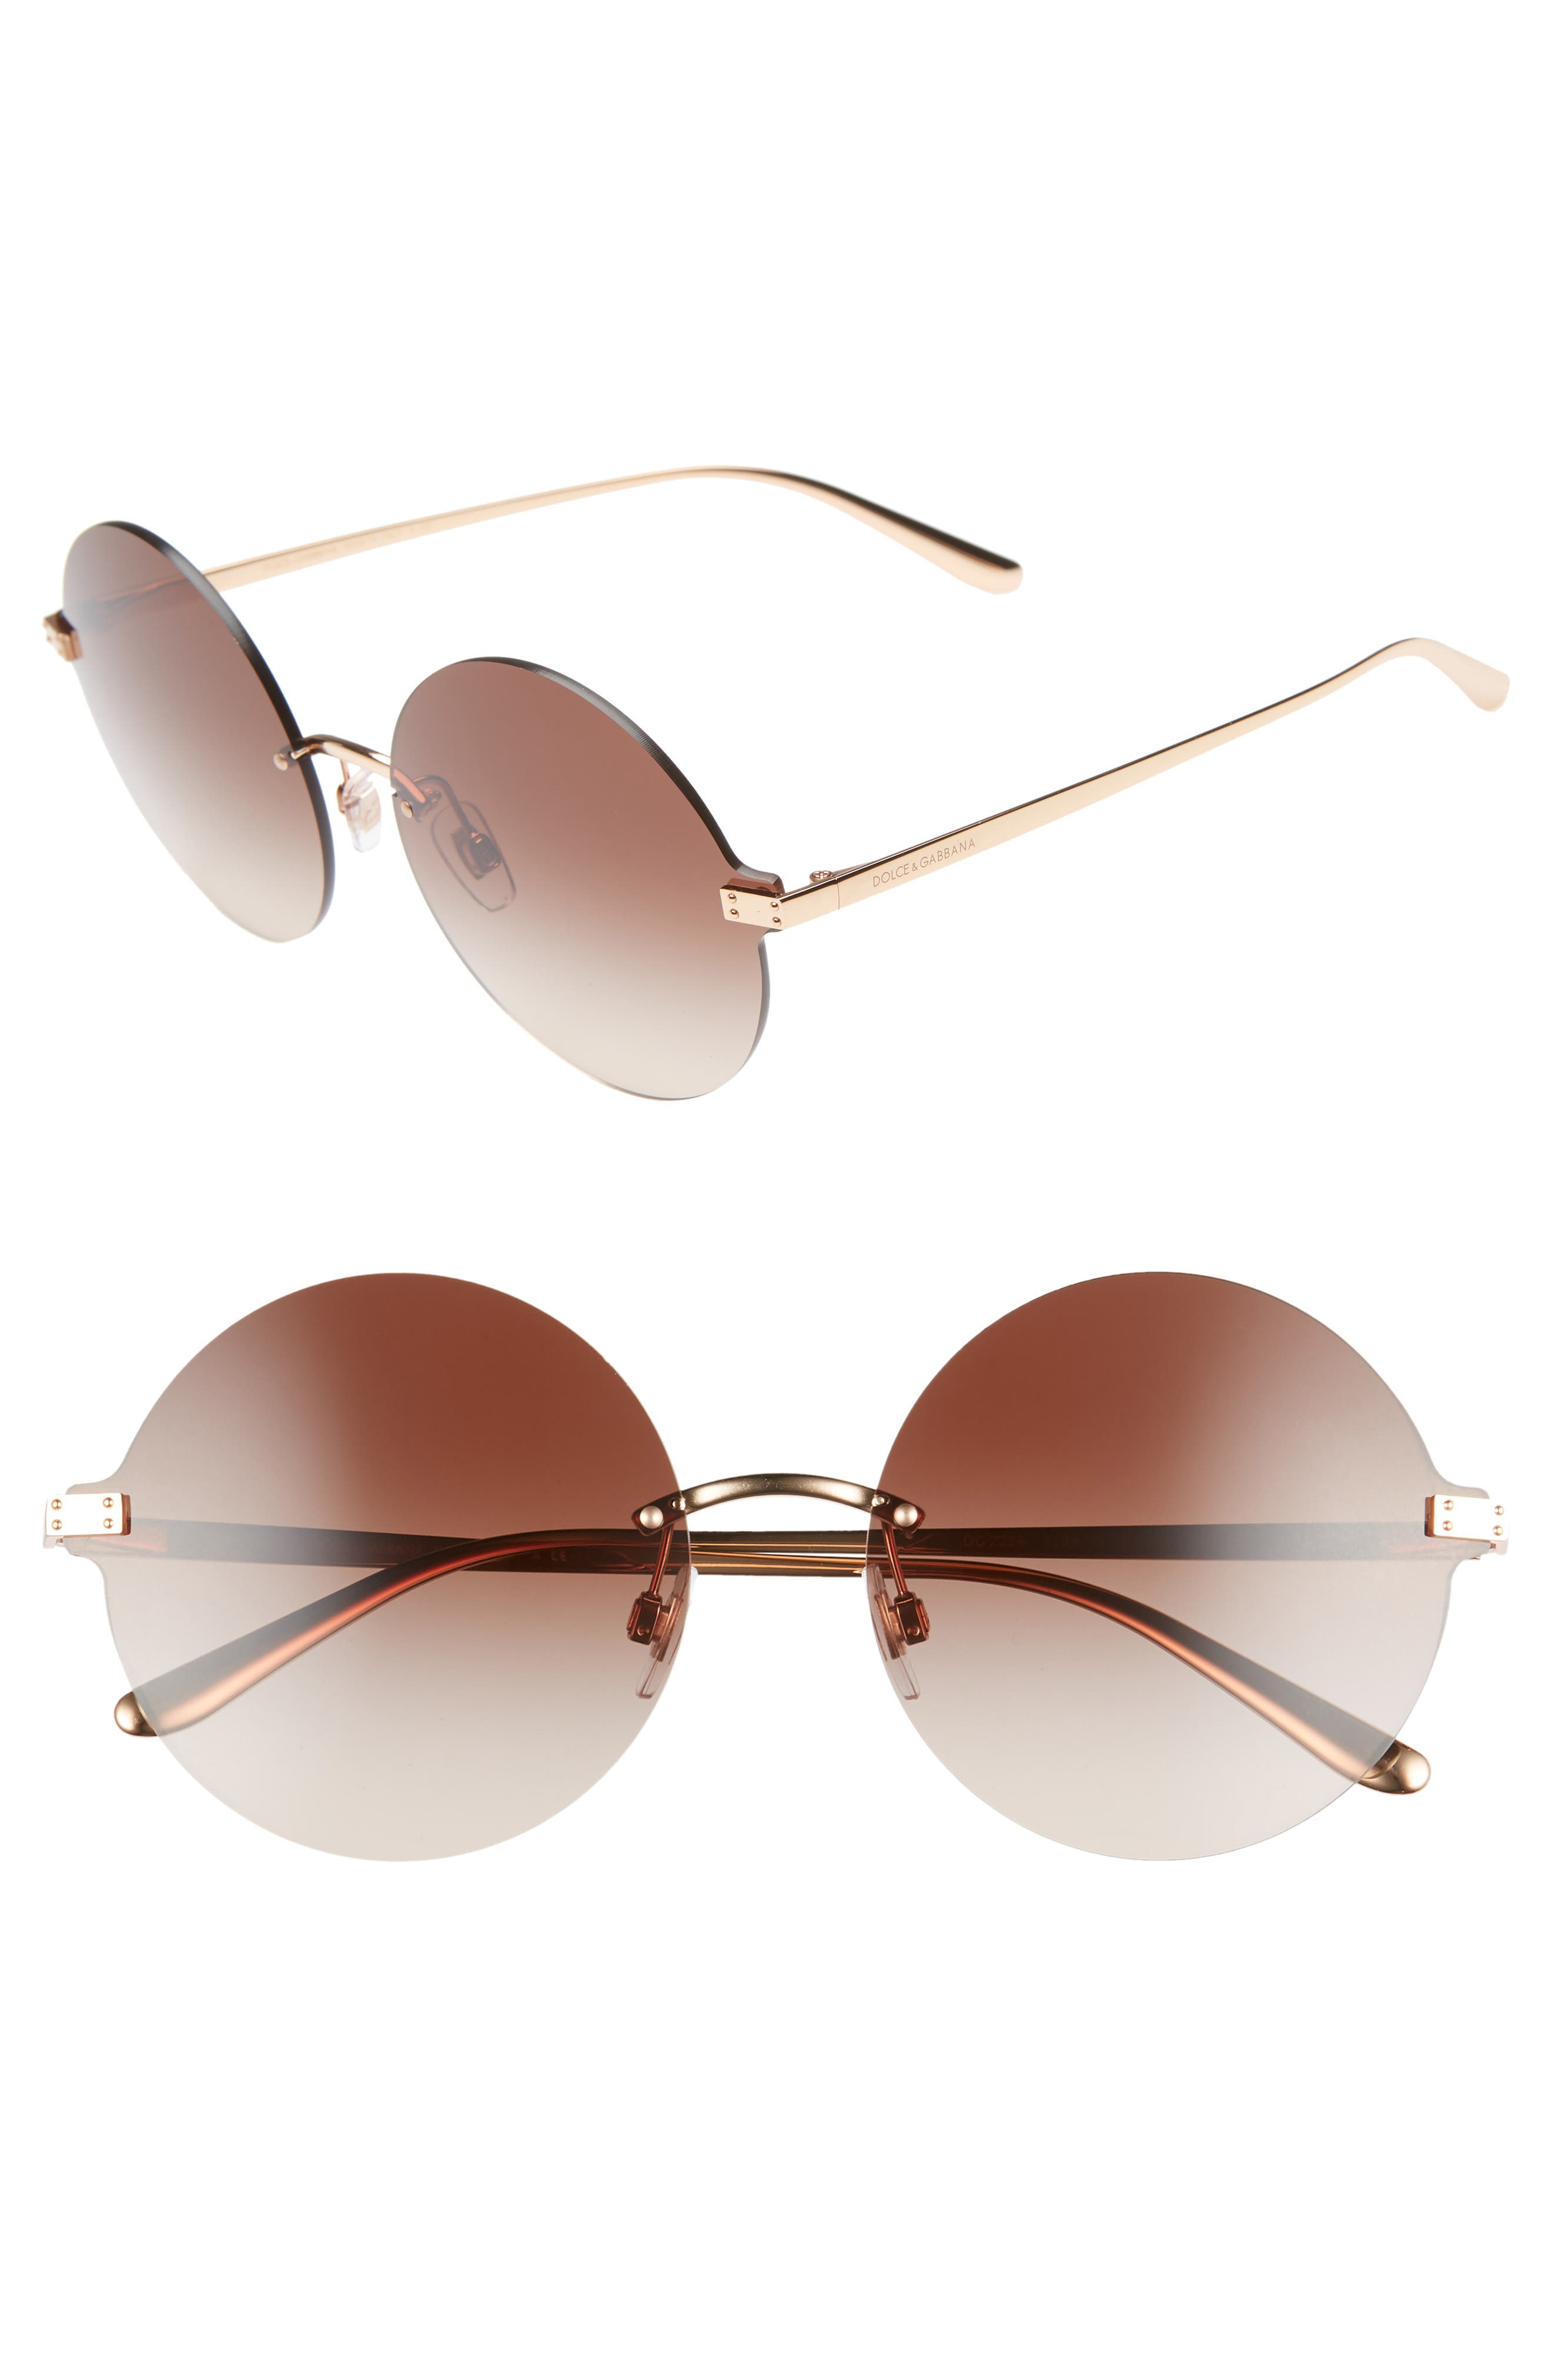 62mm Oversize Gradient Rimless Round Sunglasses, Main, color, BROWN/ GOLD